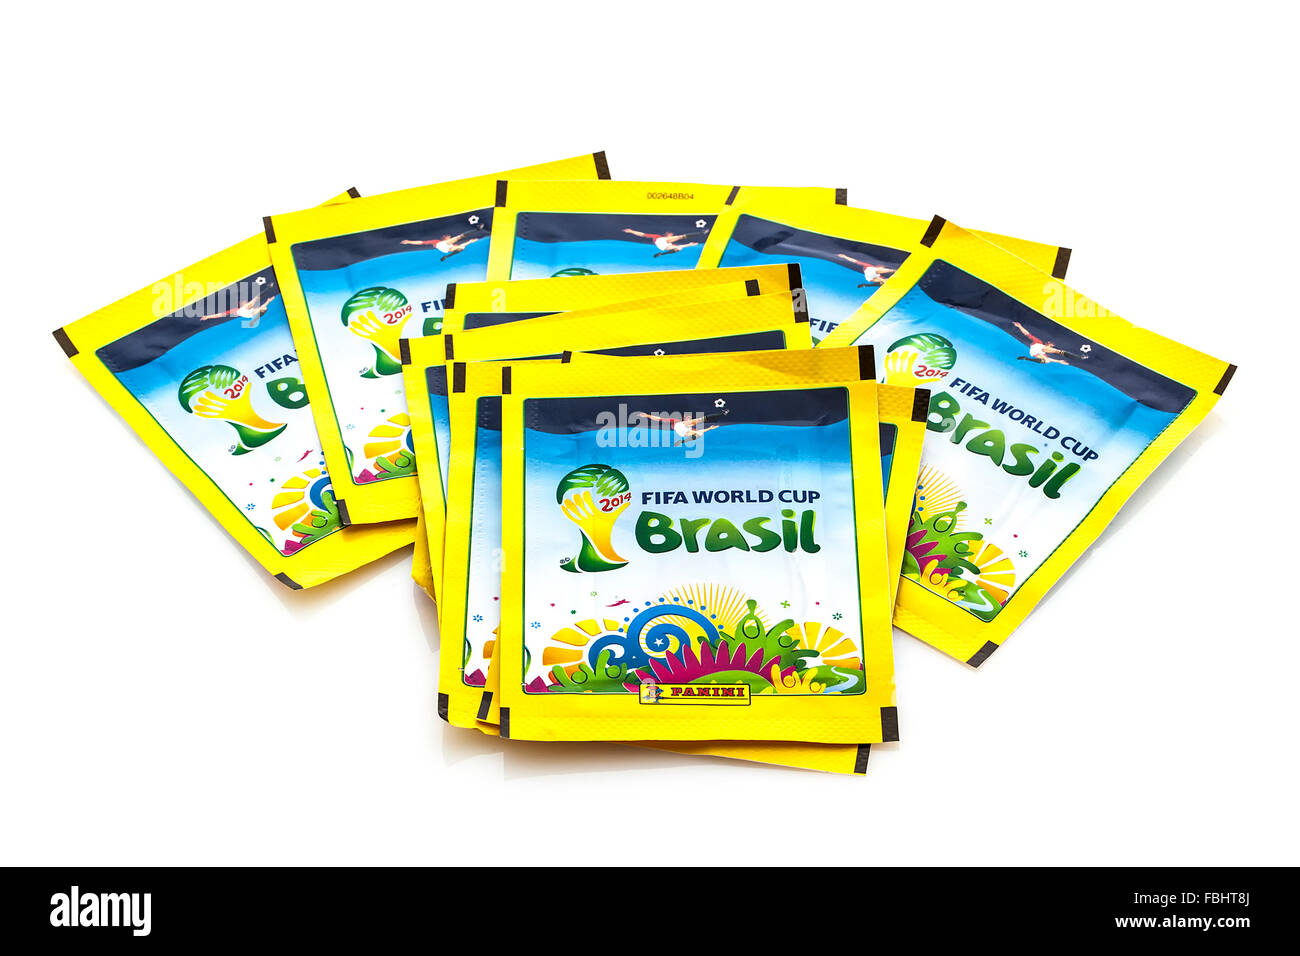 Panini FIFA World Cup 2014 Stickers on a white background - Stock Image